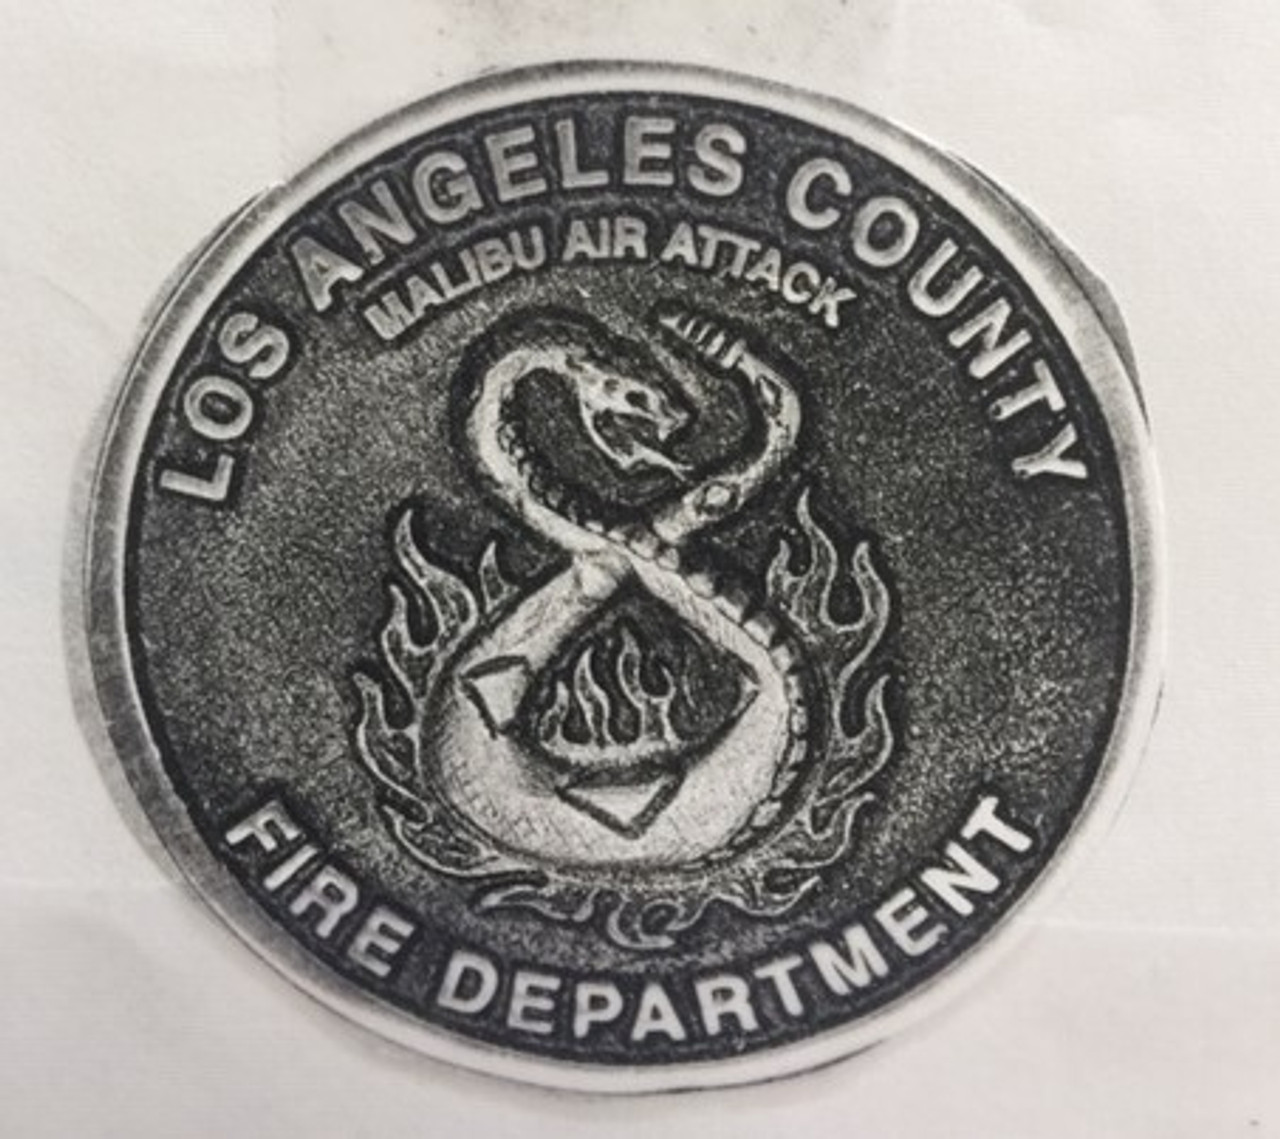 Los Angeles County Fire Department Malibu Air Attack Buckle (RESTRICTED)